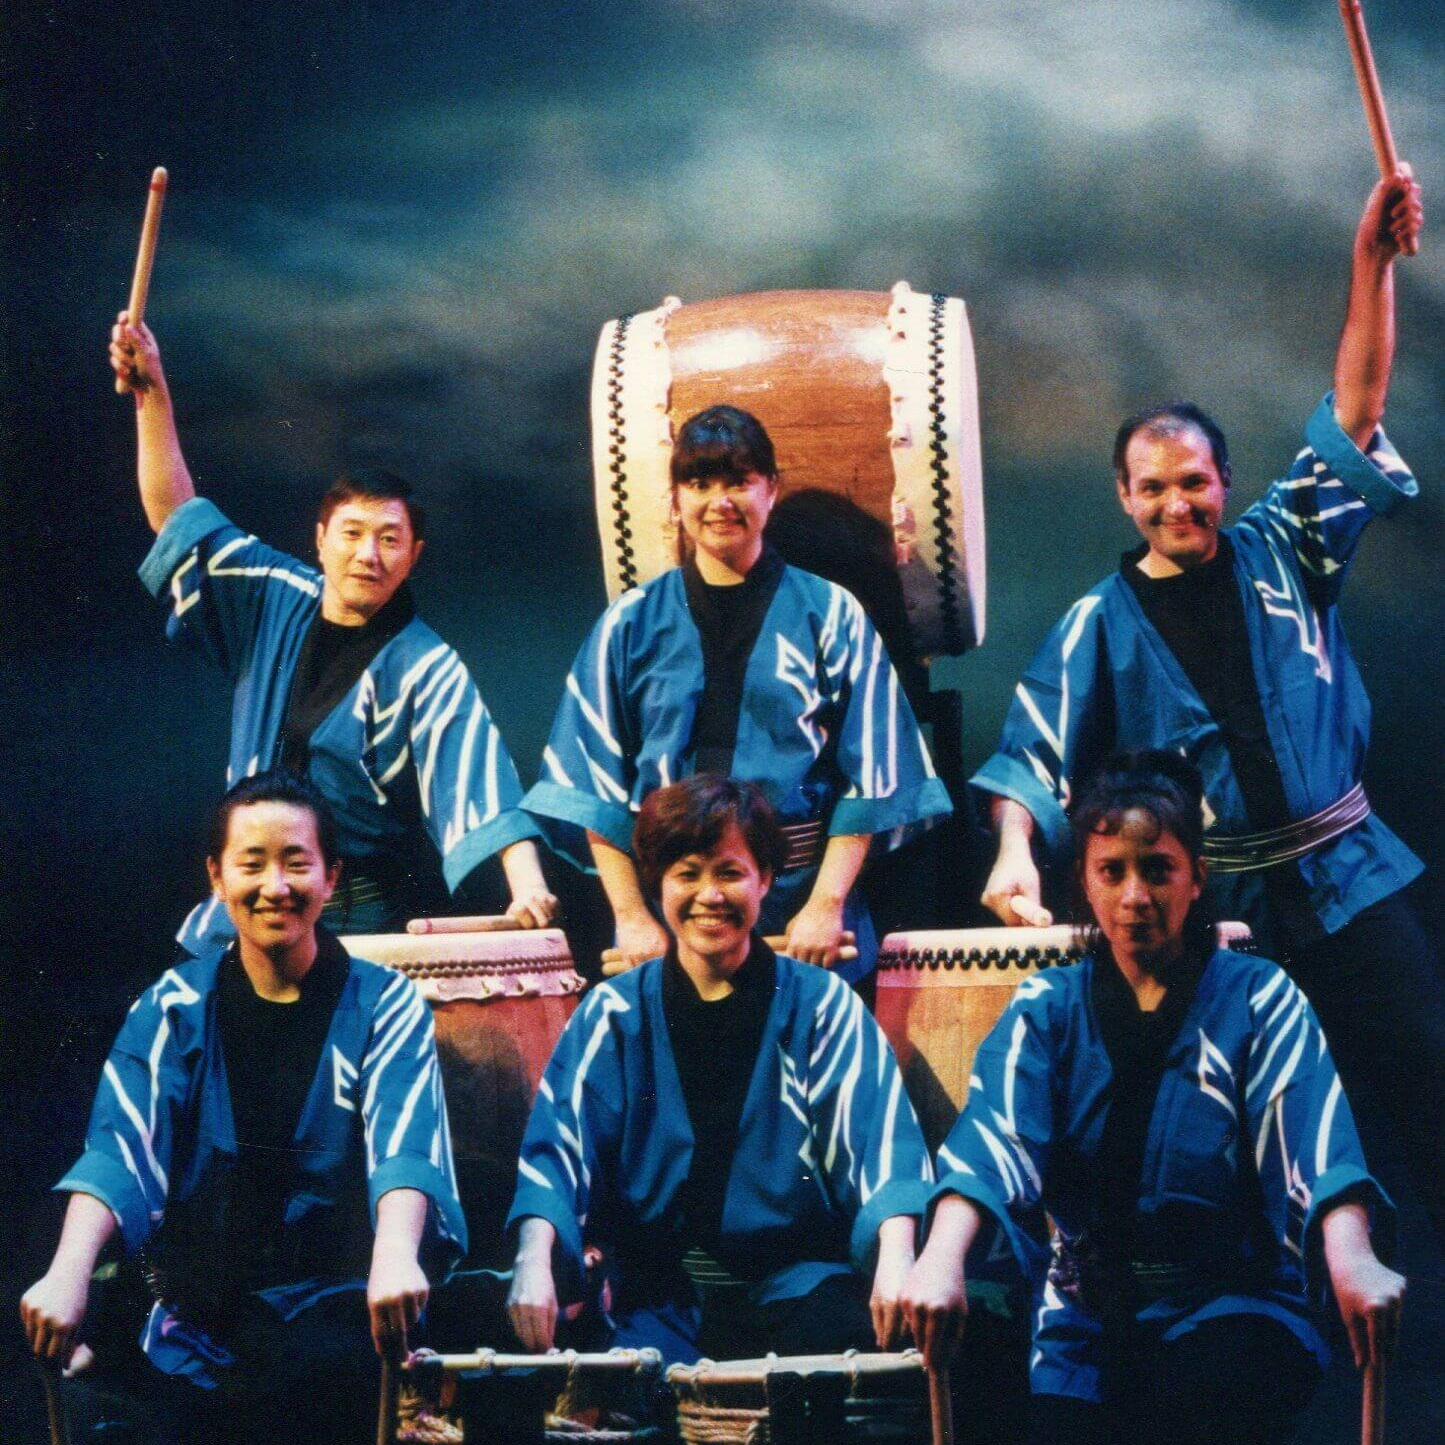 THUNDER DRUMS OF MU DAIKO - adapted & directed by ZARAAWAR MISTRY December 10 - 20, 1998